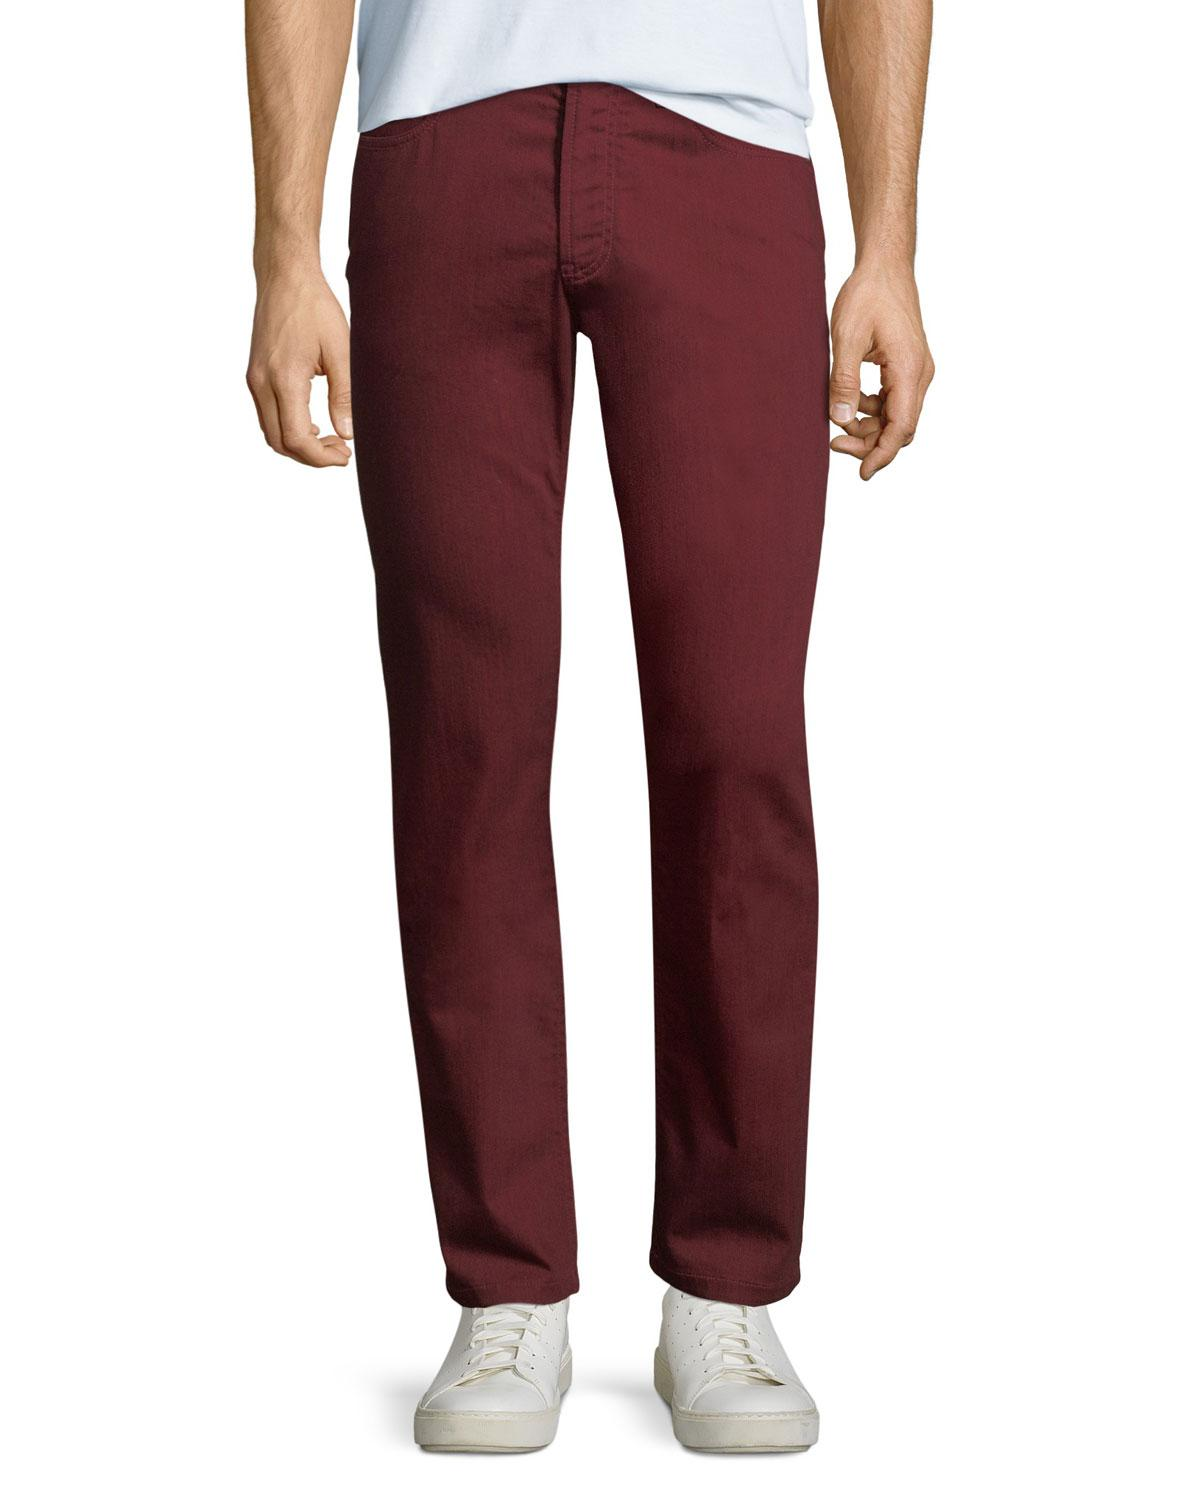 6c2965f789 Red Men's Stretch-cotton Twill Pants